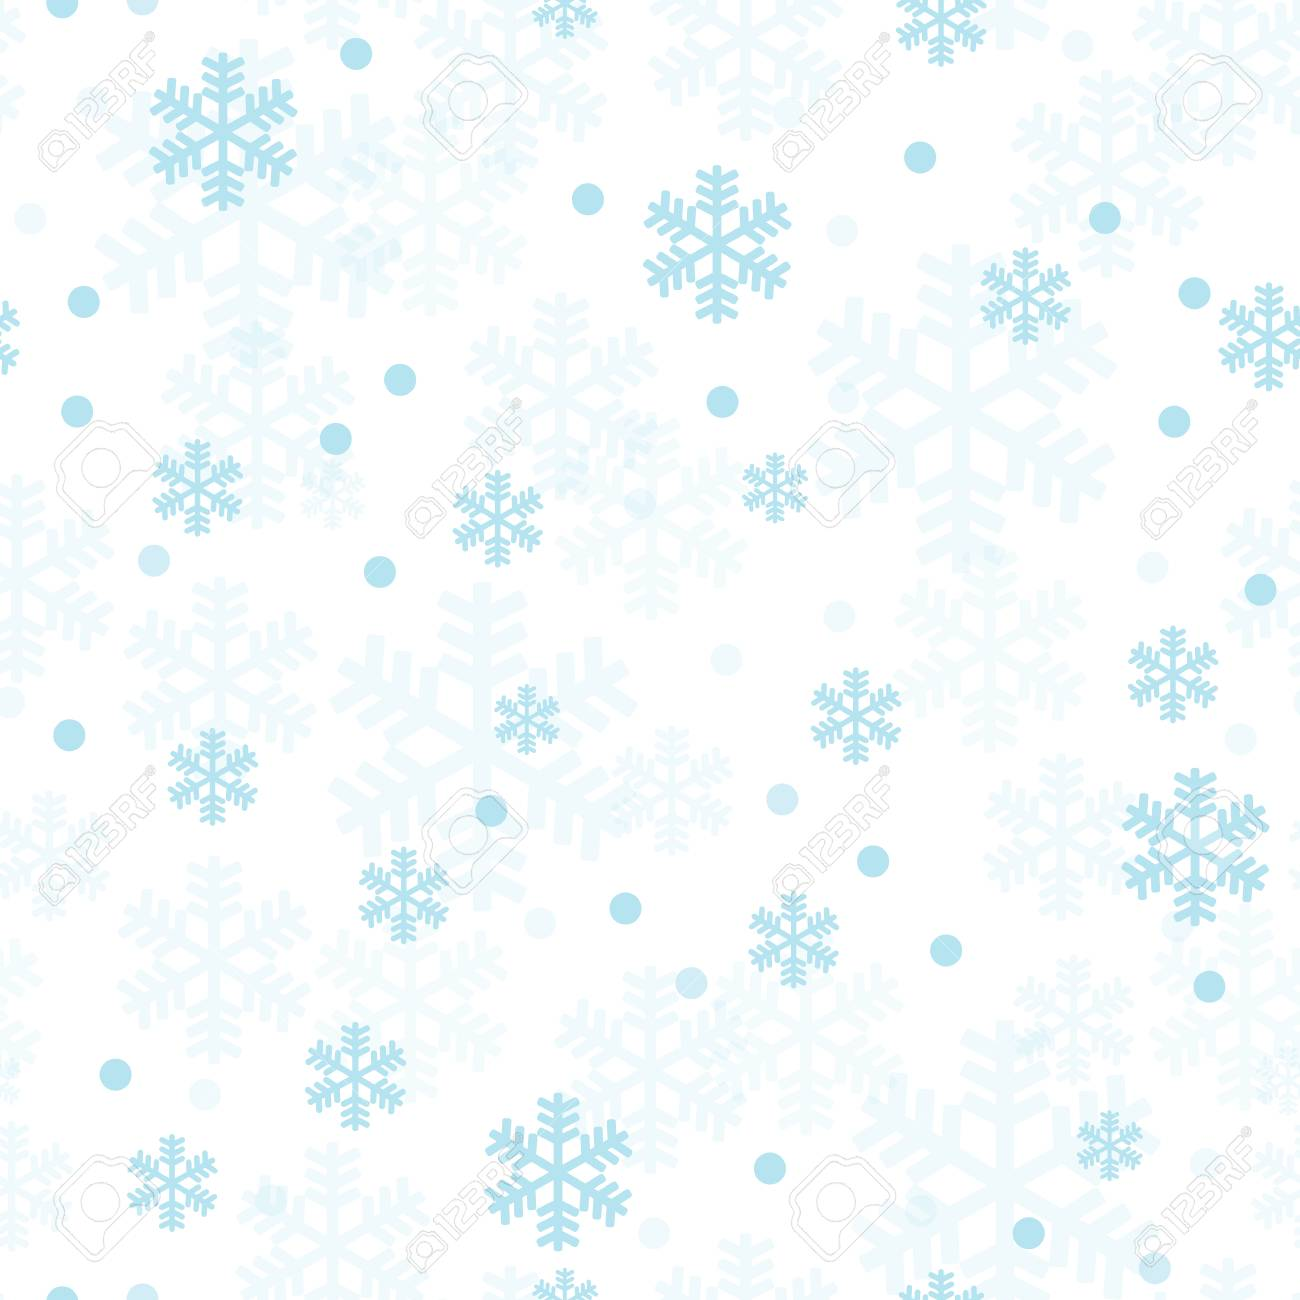 112538004 pastel blue christmas snowflakes seamless pattern great for winter holidays wallpaper backgrounds in